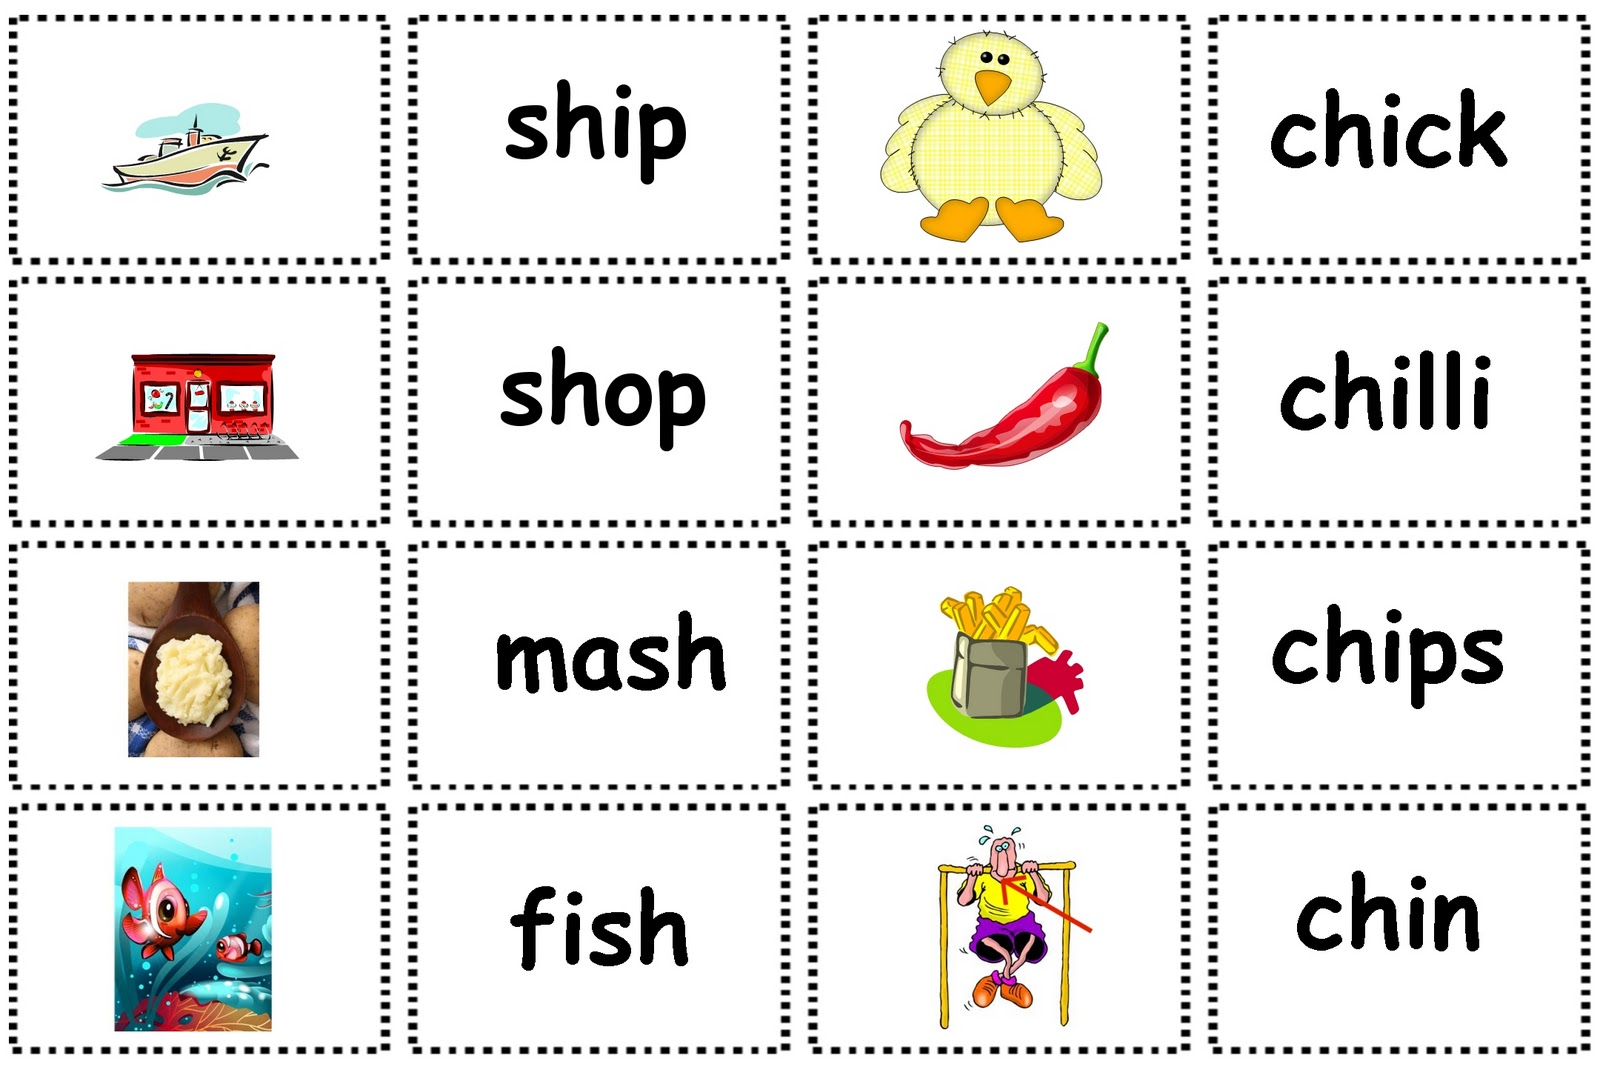 Worksheets Ch Sound Worksheets sh and ch worksheets sharebrowse sound rupsucks printables worksheets